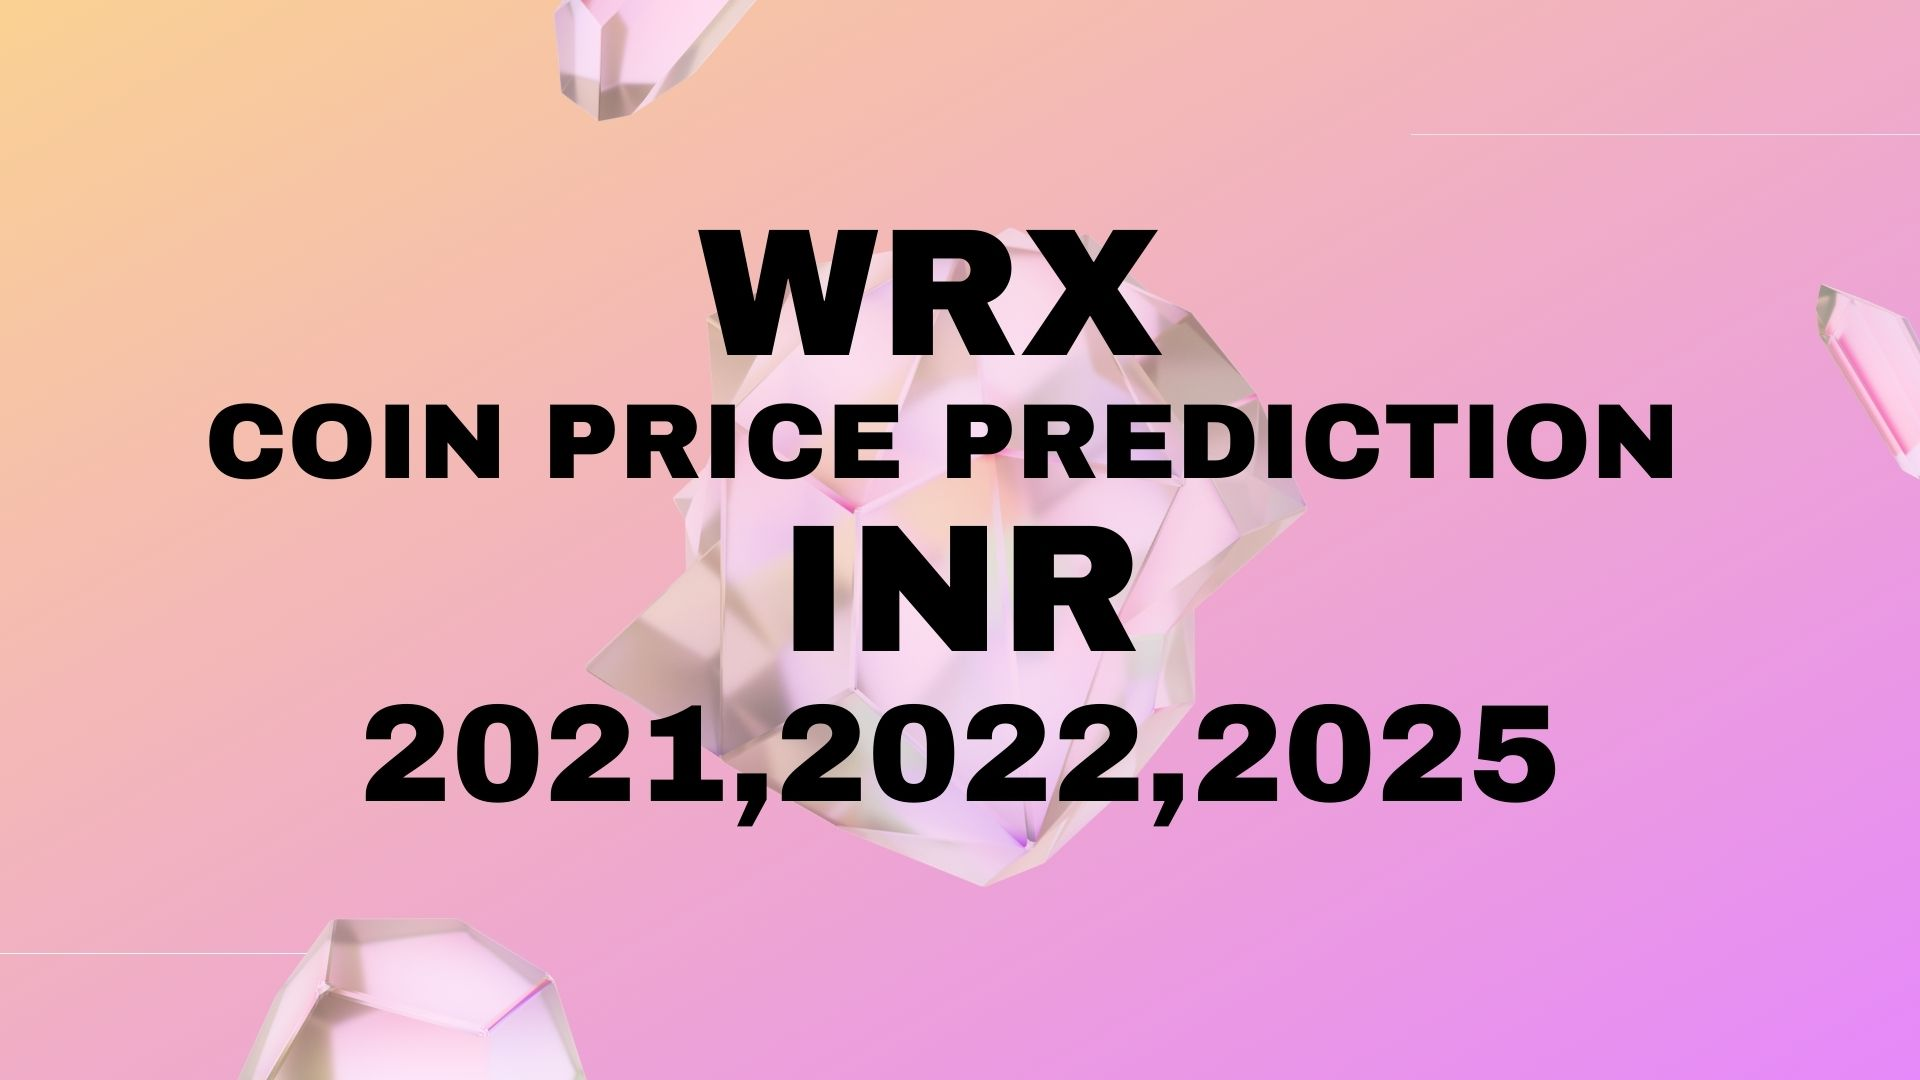 WRX Coin Price Prediction in InR